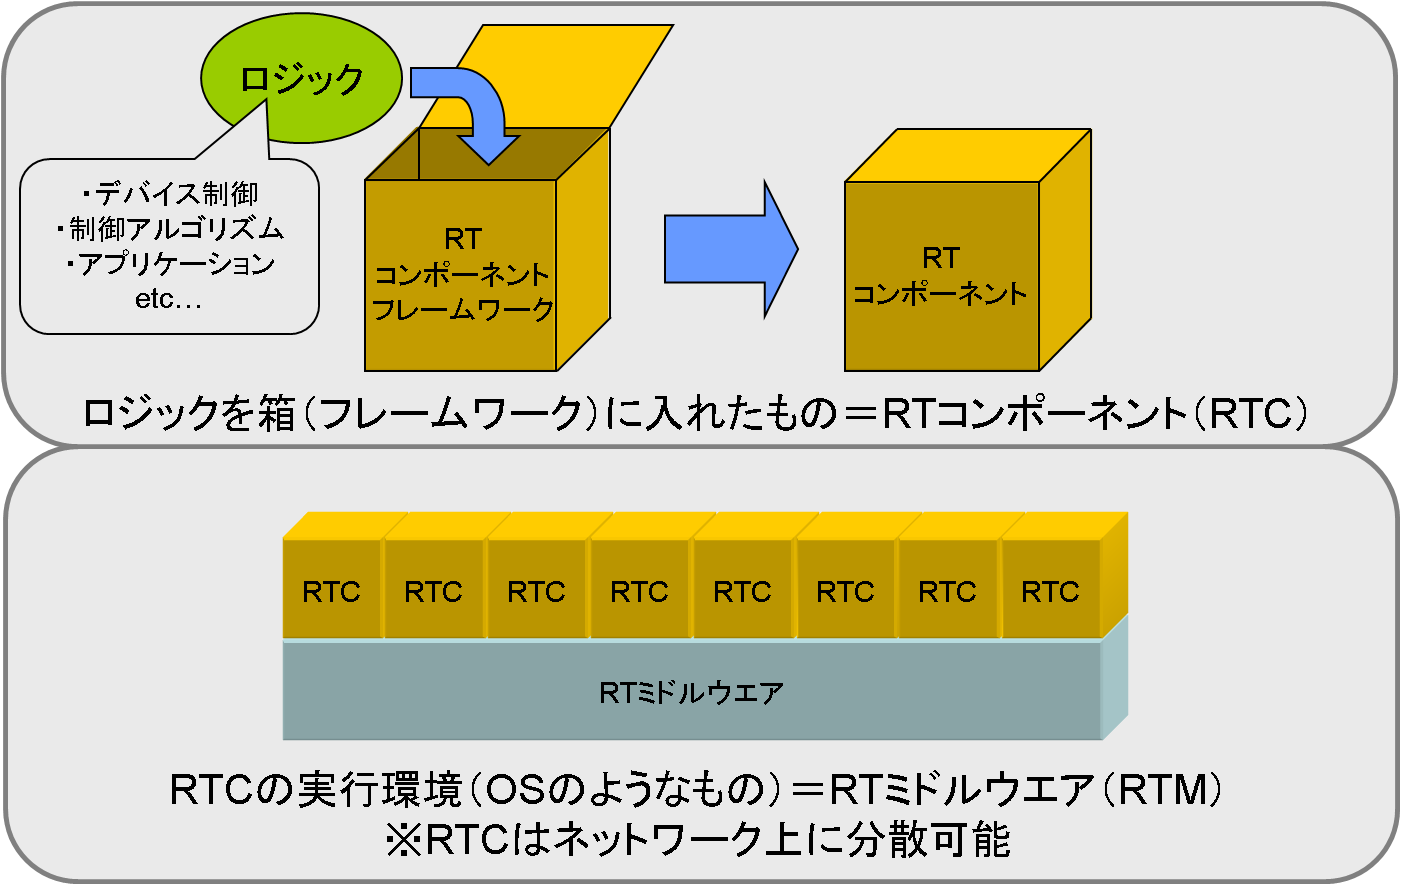 rtm_and_rtc_ja.png